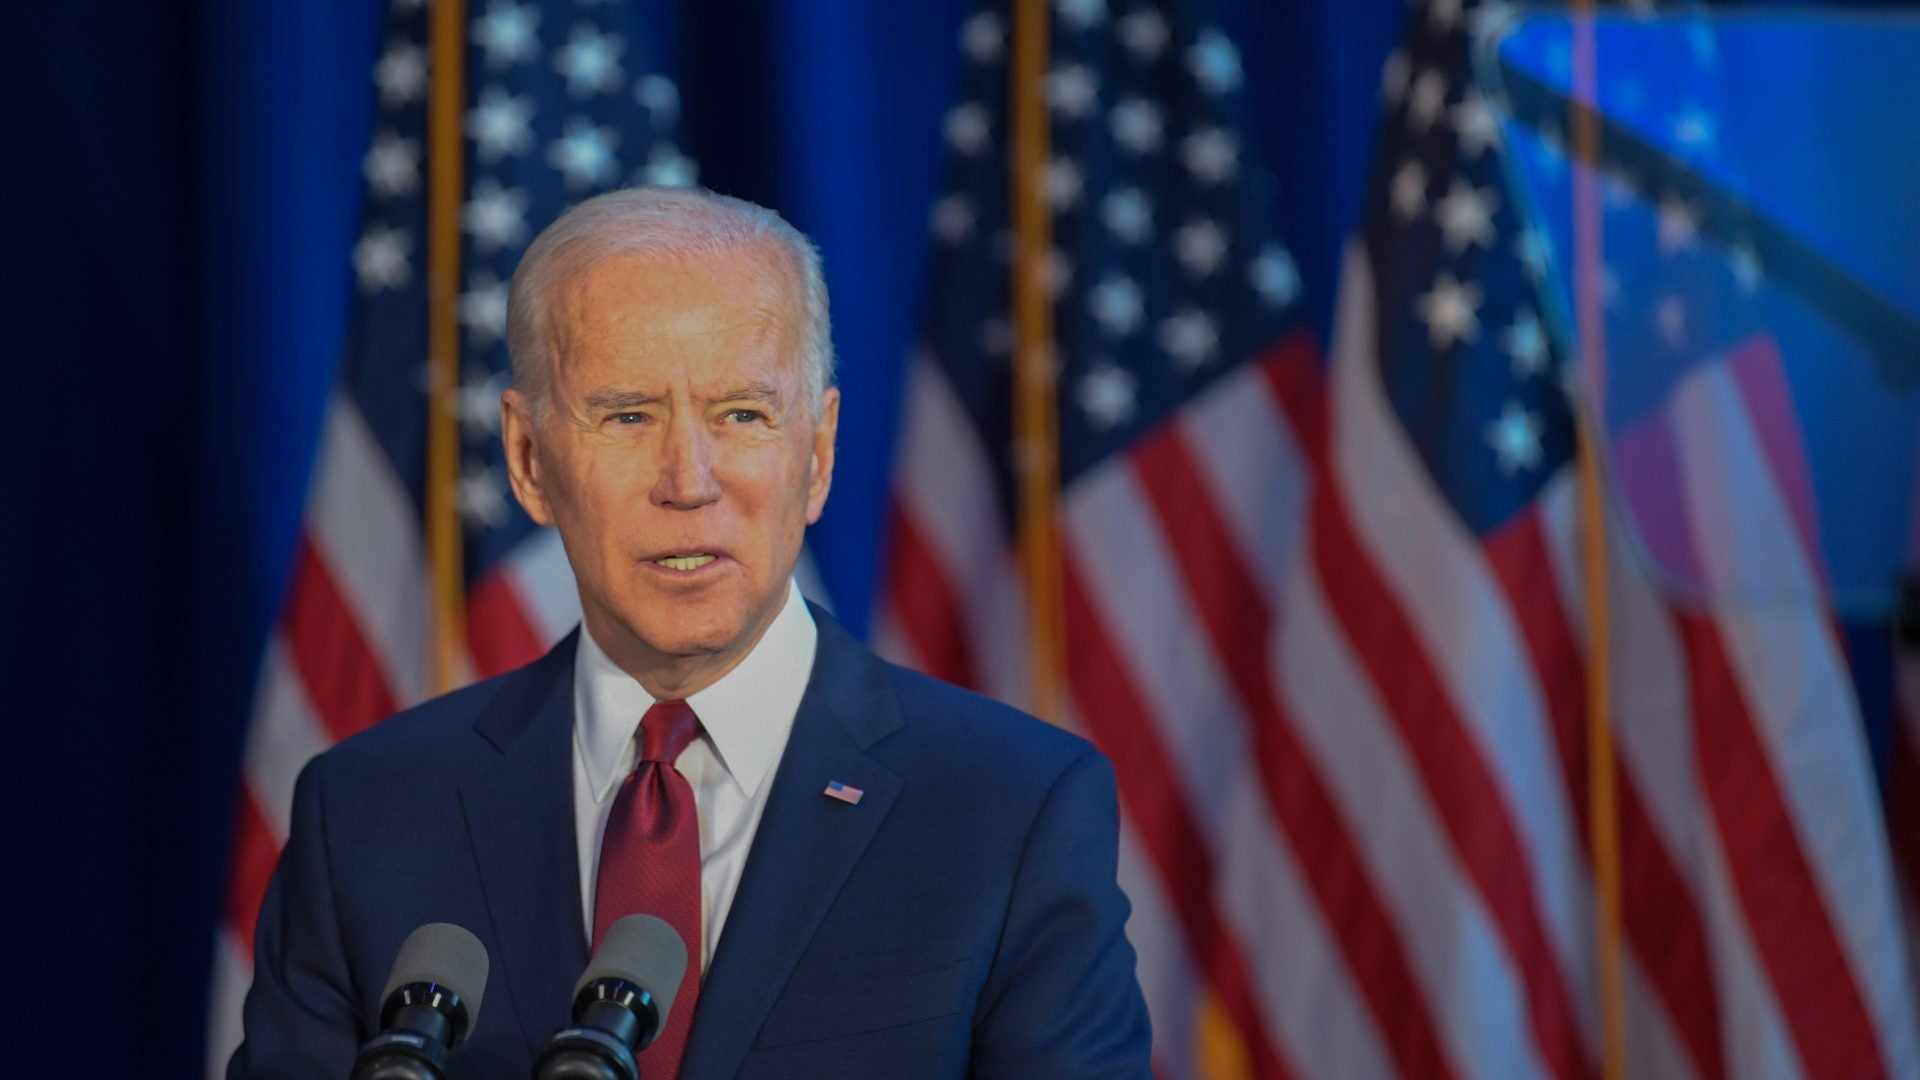 Biden Addresses Black Women's Pay, Maternal Mortality In Plan For Black America